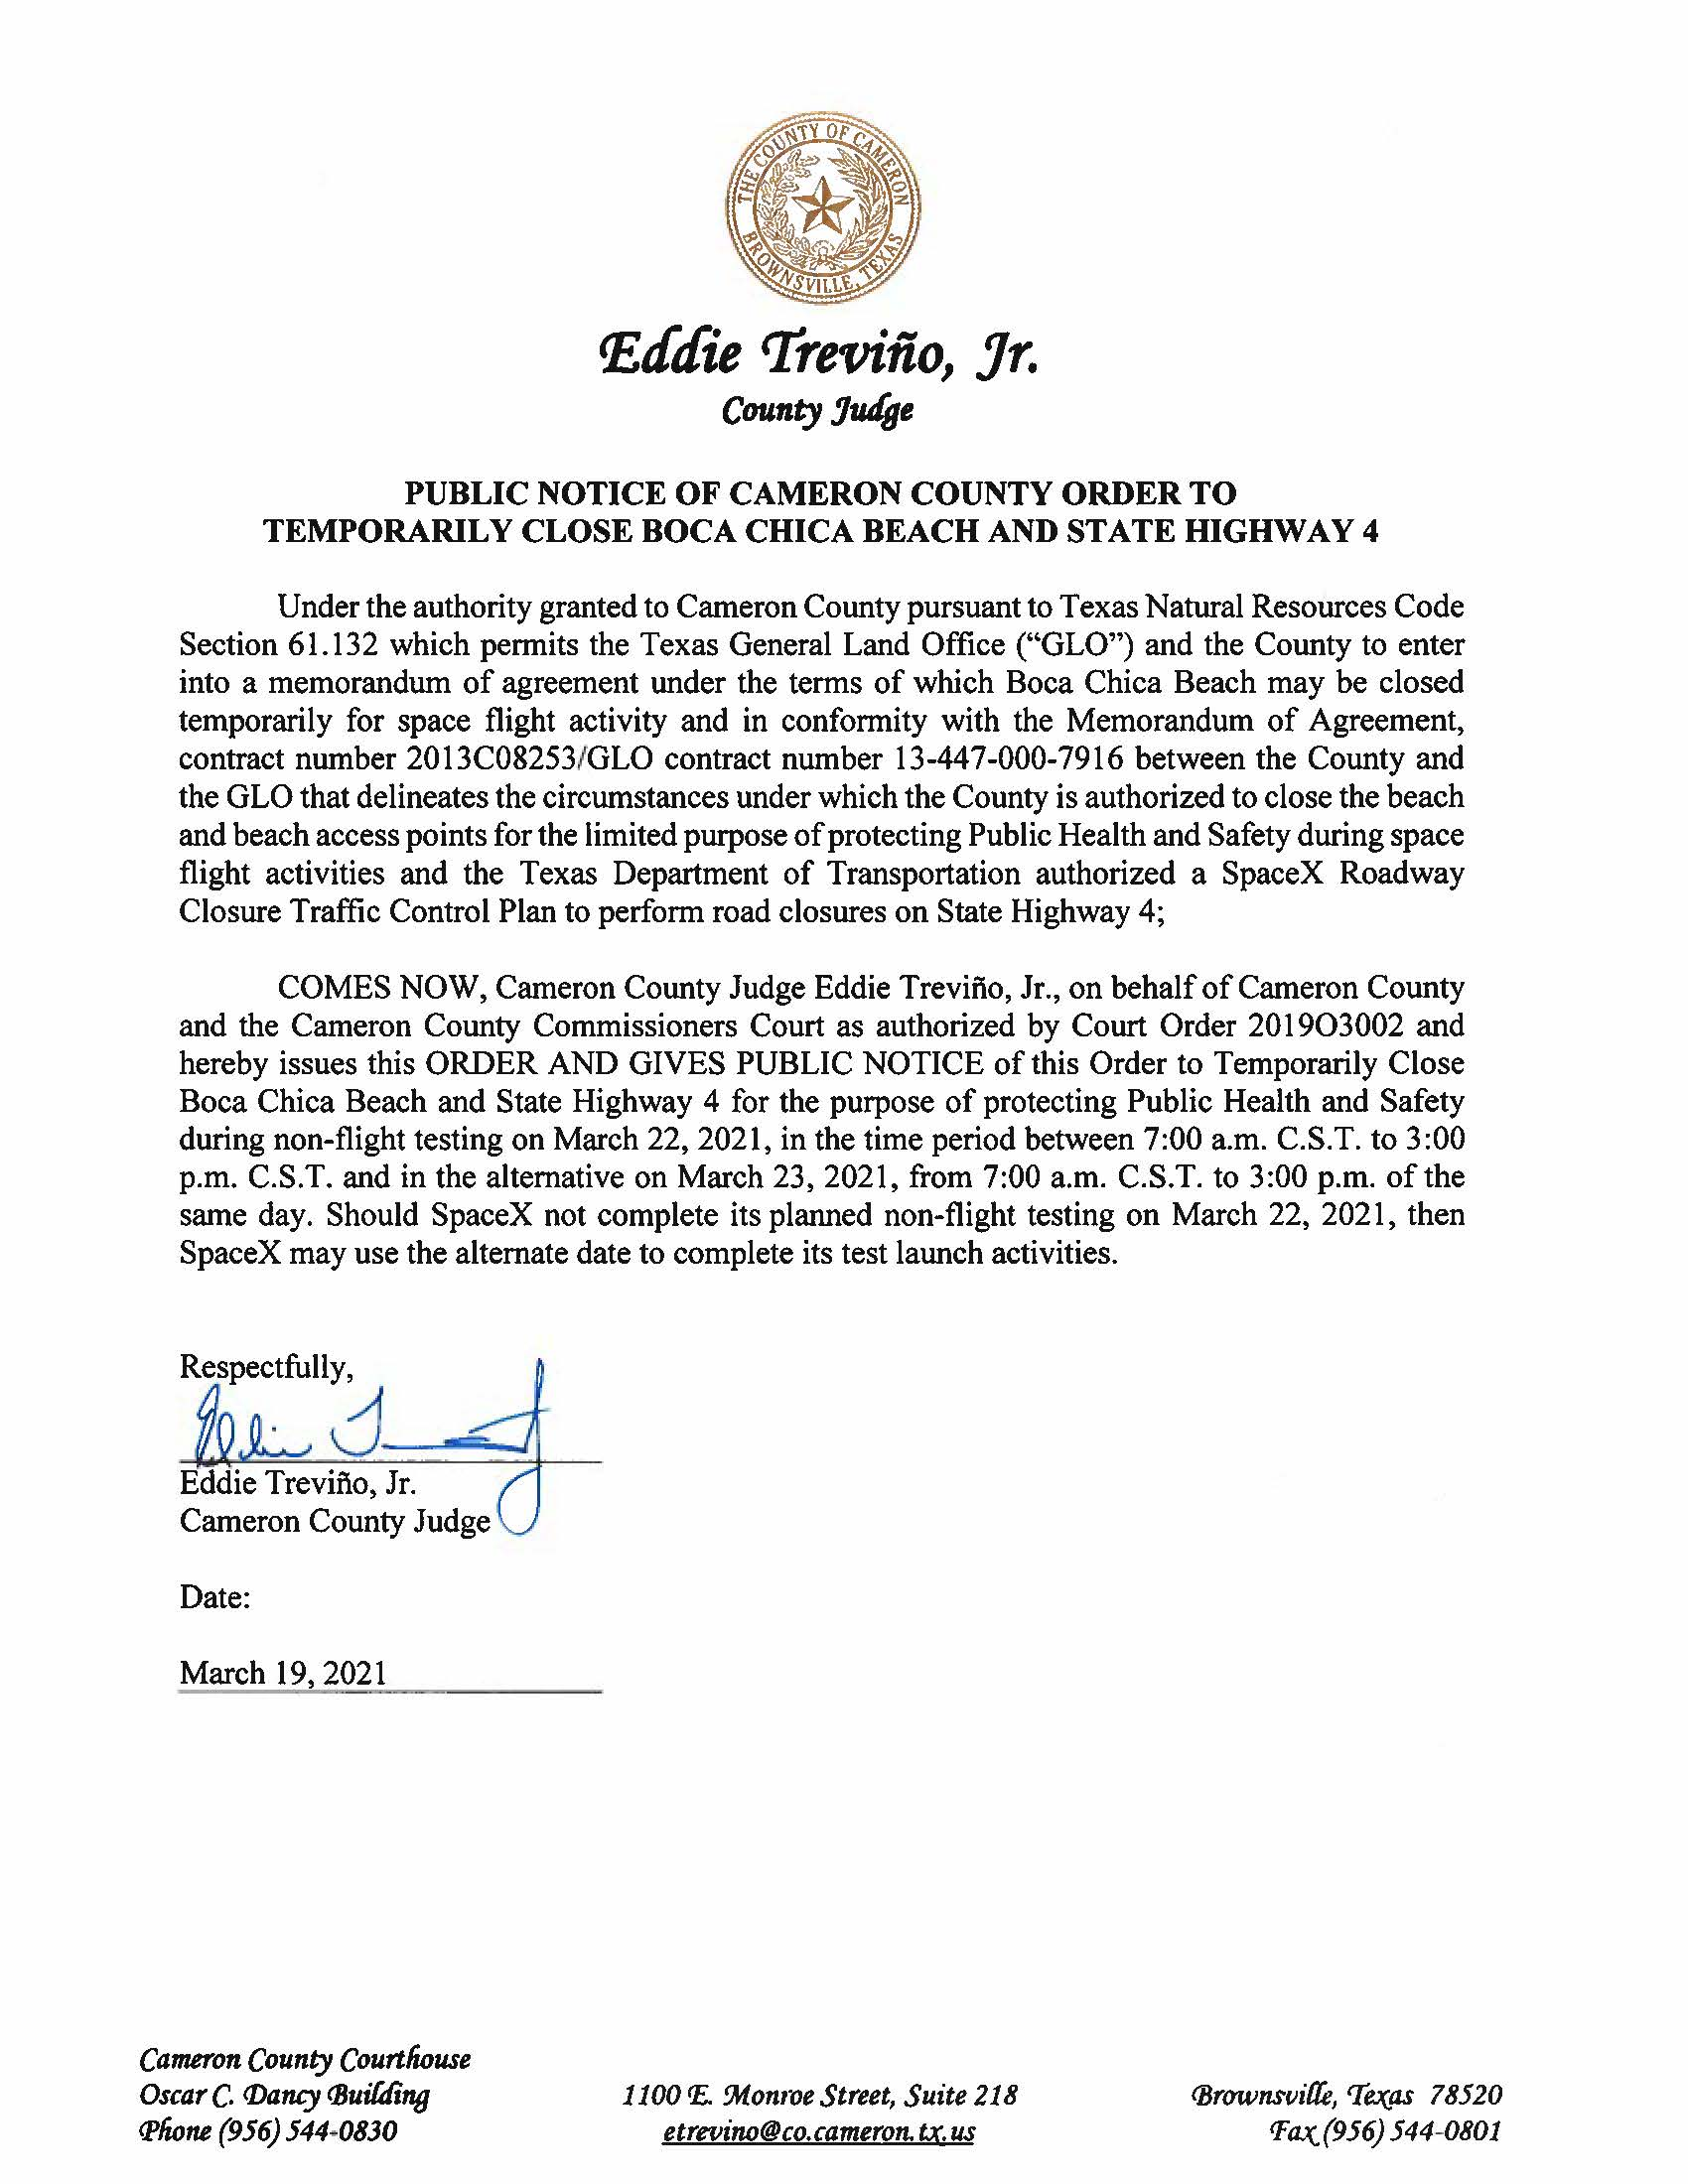 PUBLIC NOTICE OF CAMERON COUNTY ORDER TO TEMP. BEACH CLOSURE AND HWY.03.22.2021